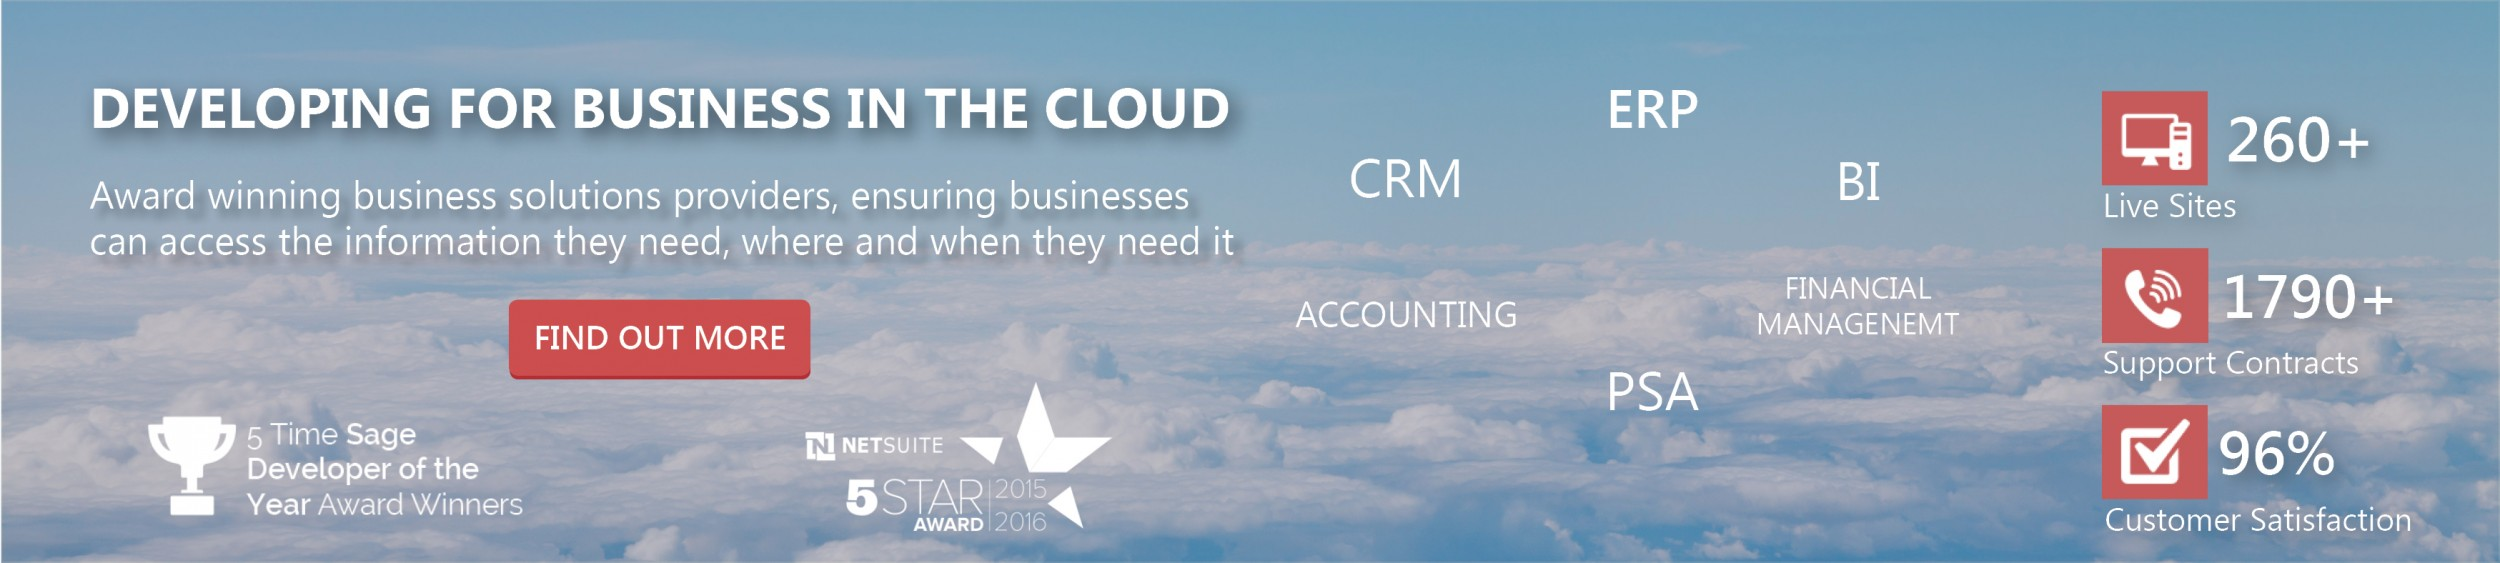 Eureka Solutions Developing for Business Cloud Banner